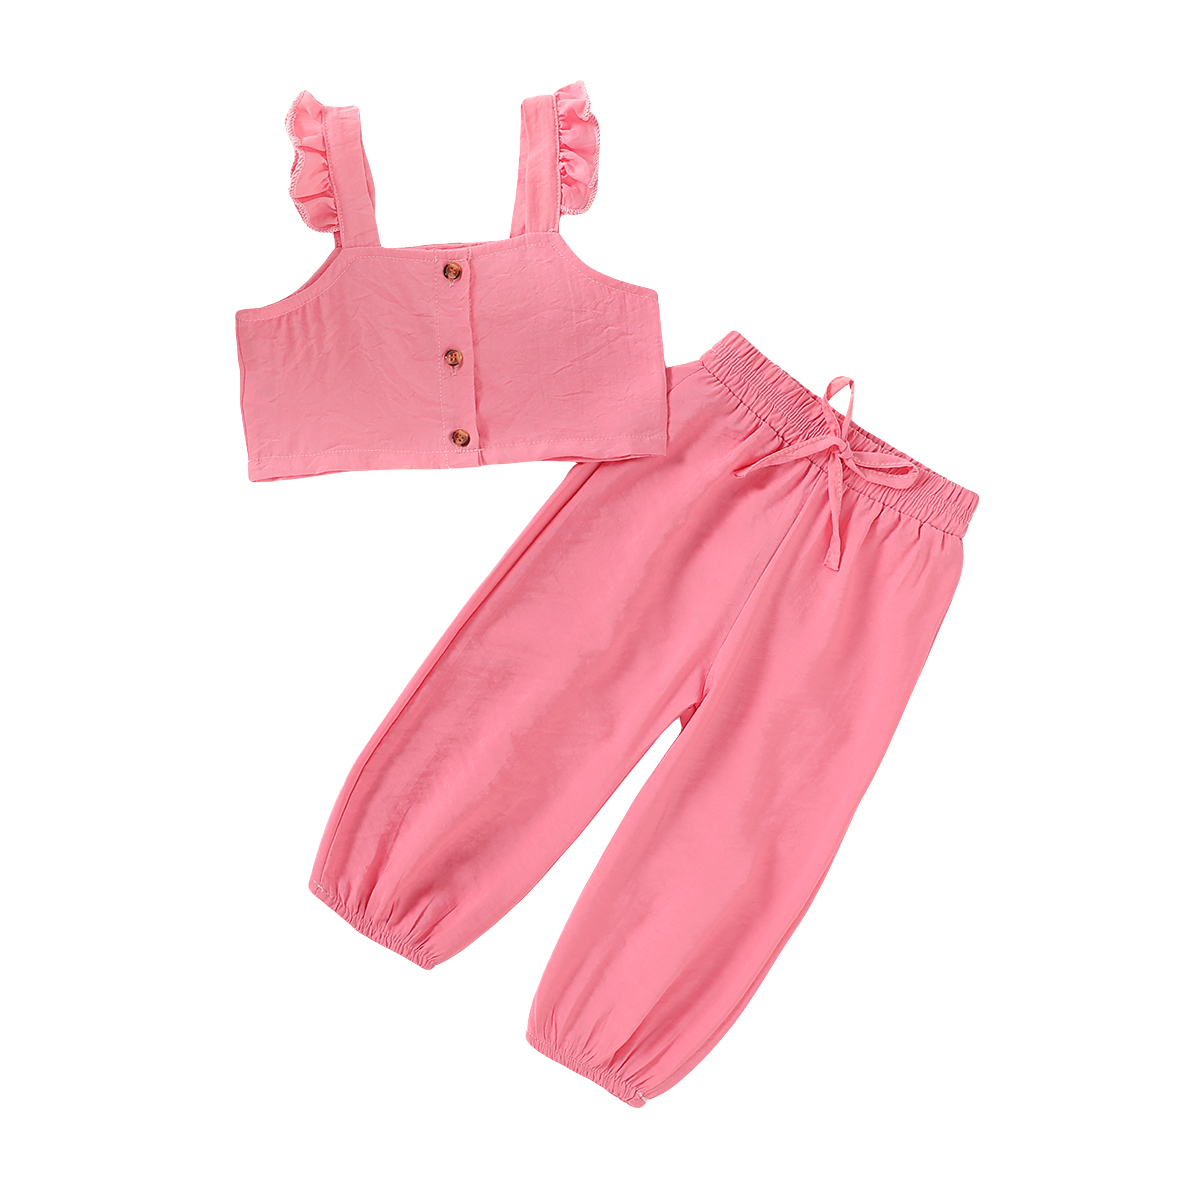 US Infant Baby Girl Mesh Sling Top Shorts Pants Trousers 2PCS Outfit Clothes Set